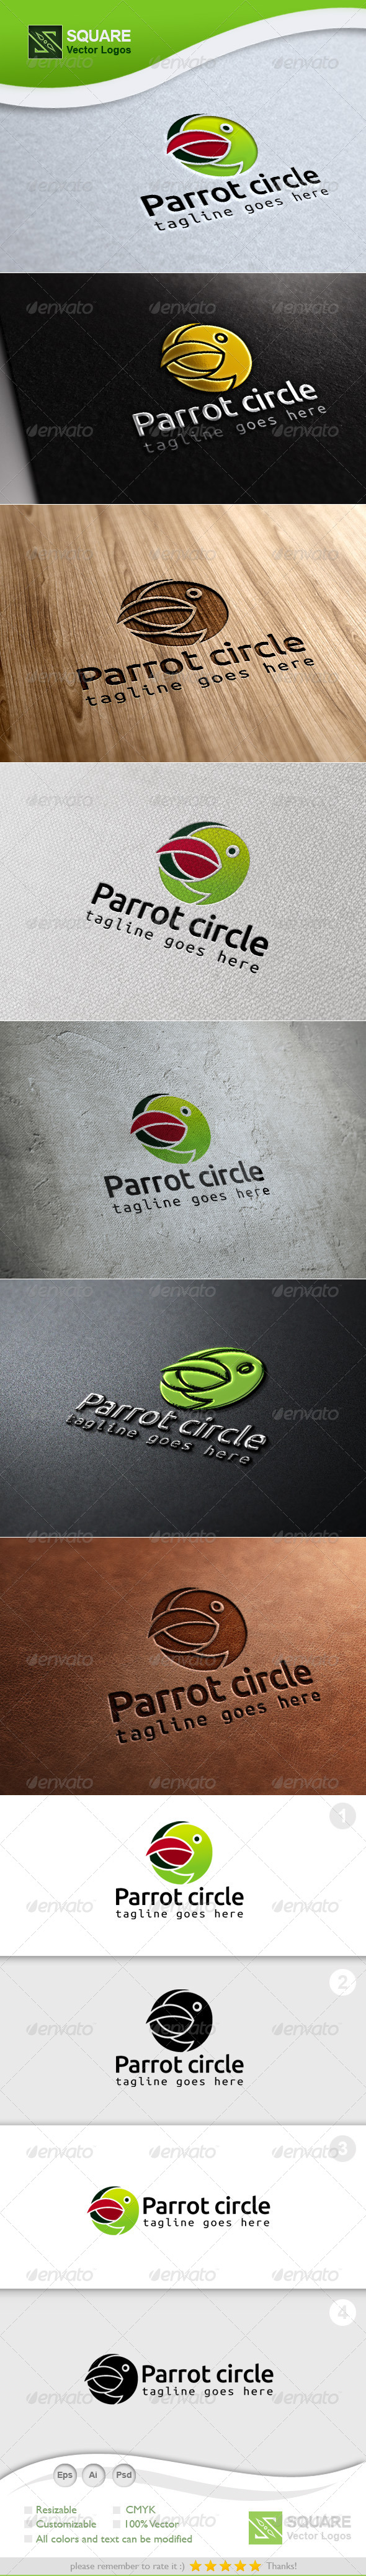 Parrot, Circle Vector Logo Template - Animals Logo Templates